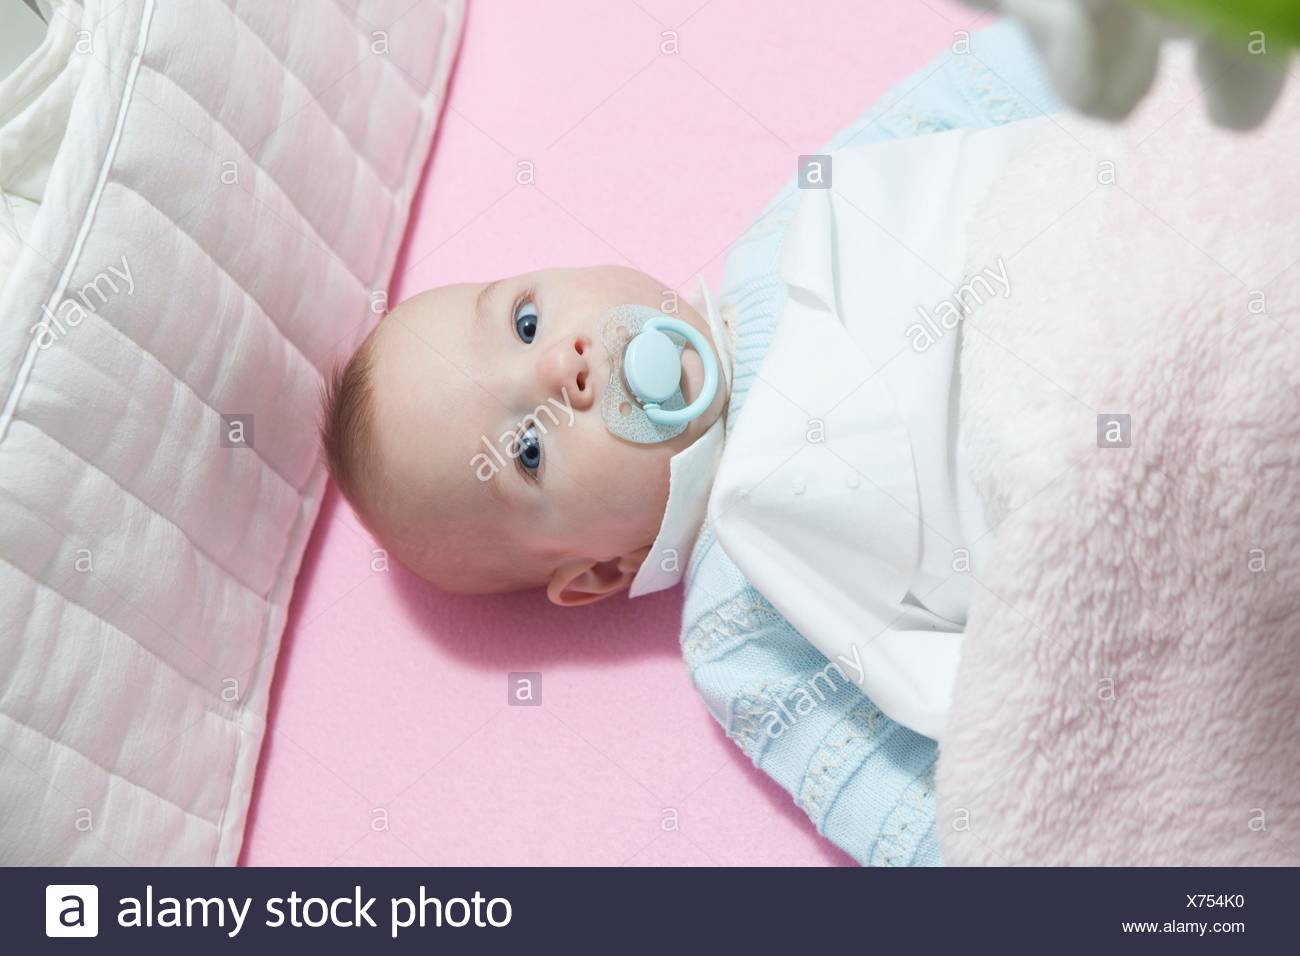 Awake four month baby boy lying in cot with bumper pad. Overhead view. Stock Photo